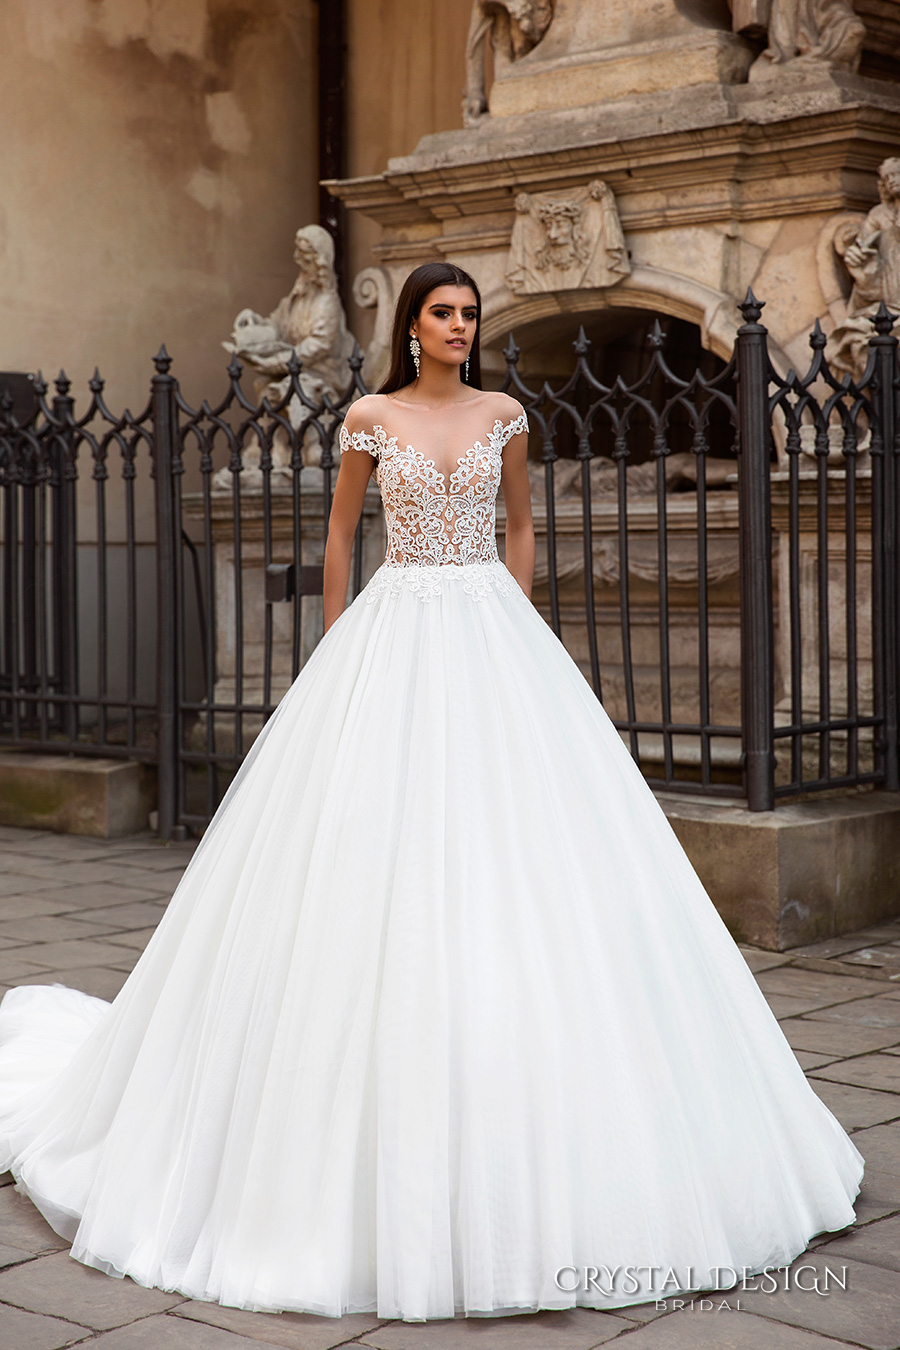 Beautiful ball gown wedding dresses family clothes for Pretty ball gown wedding dresses